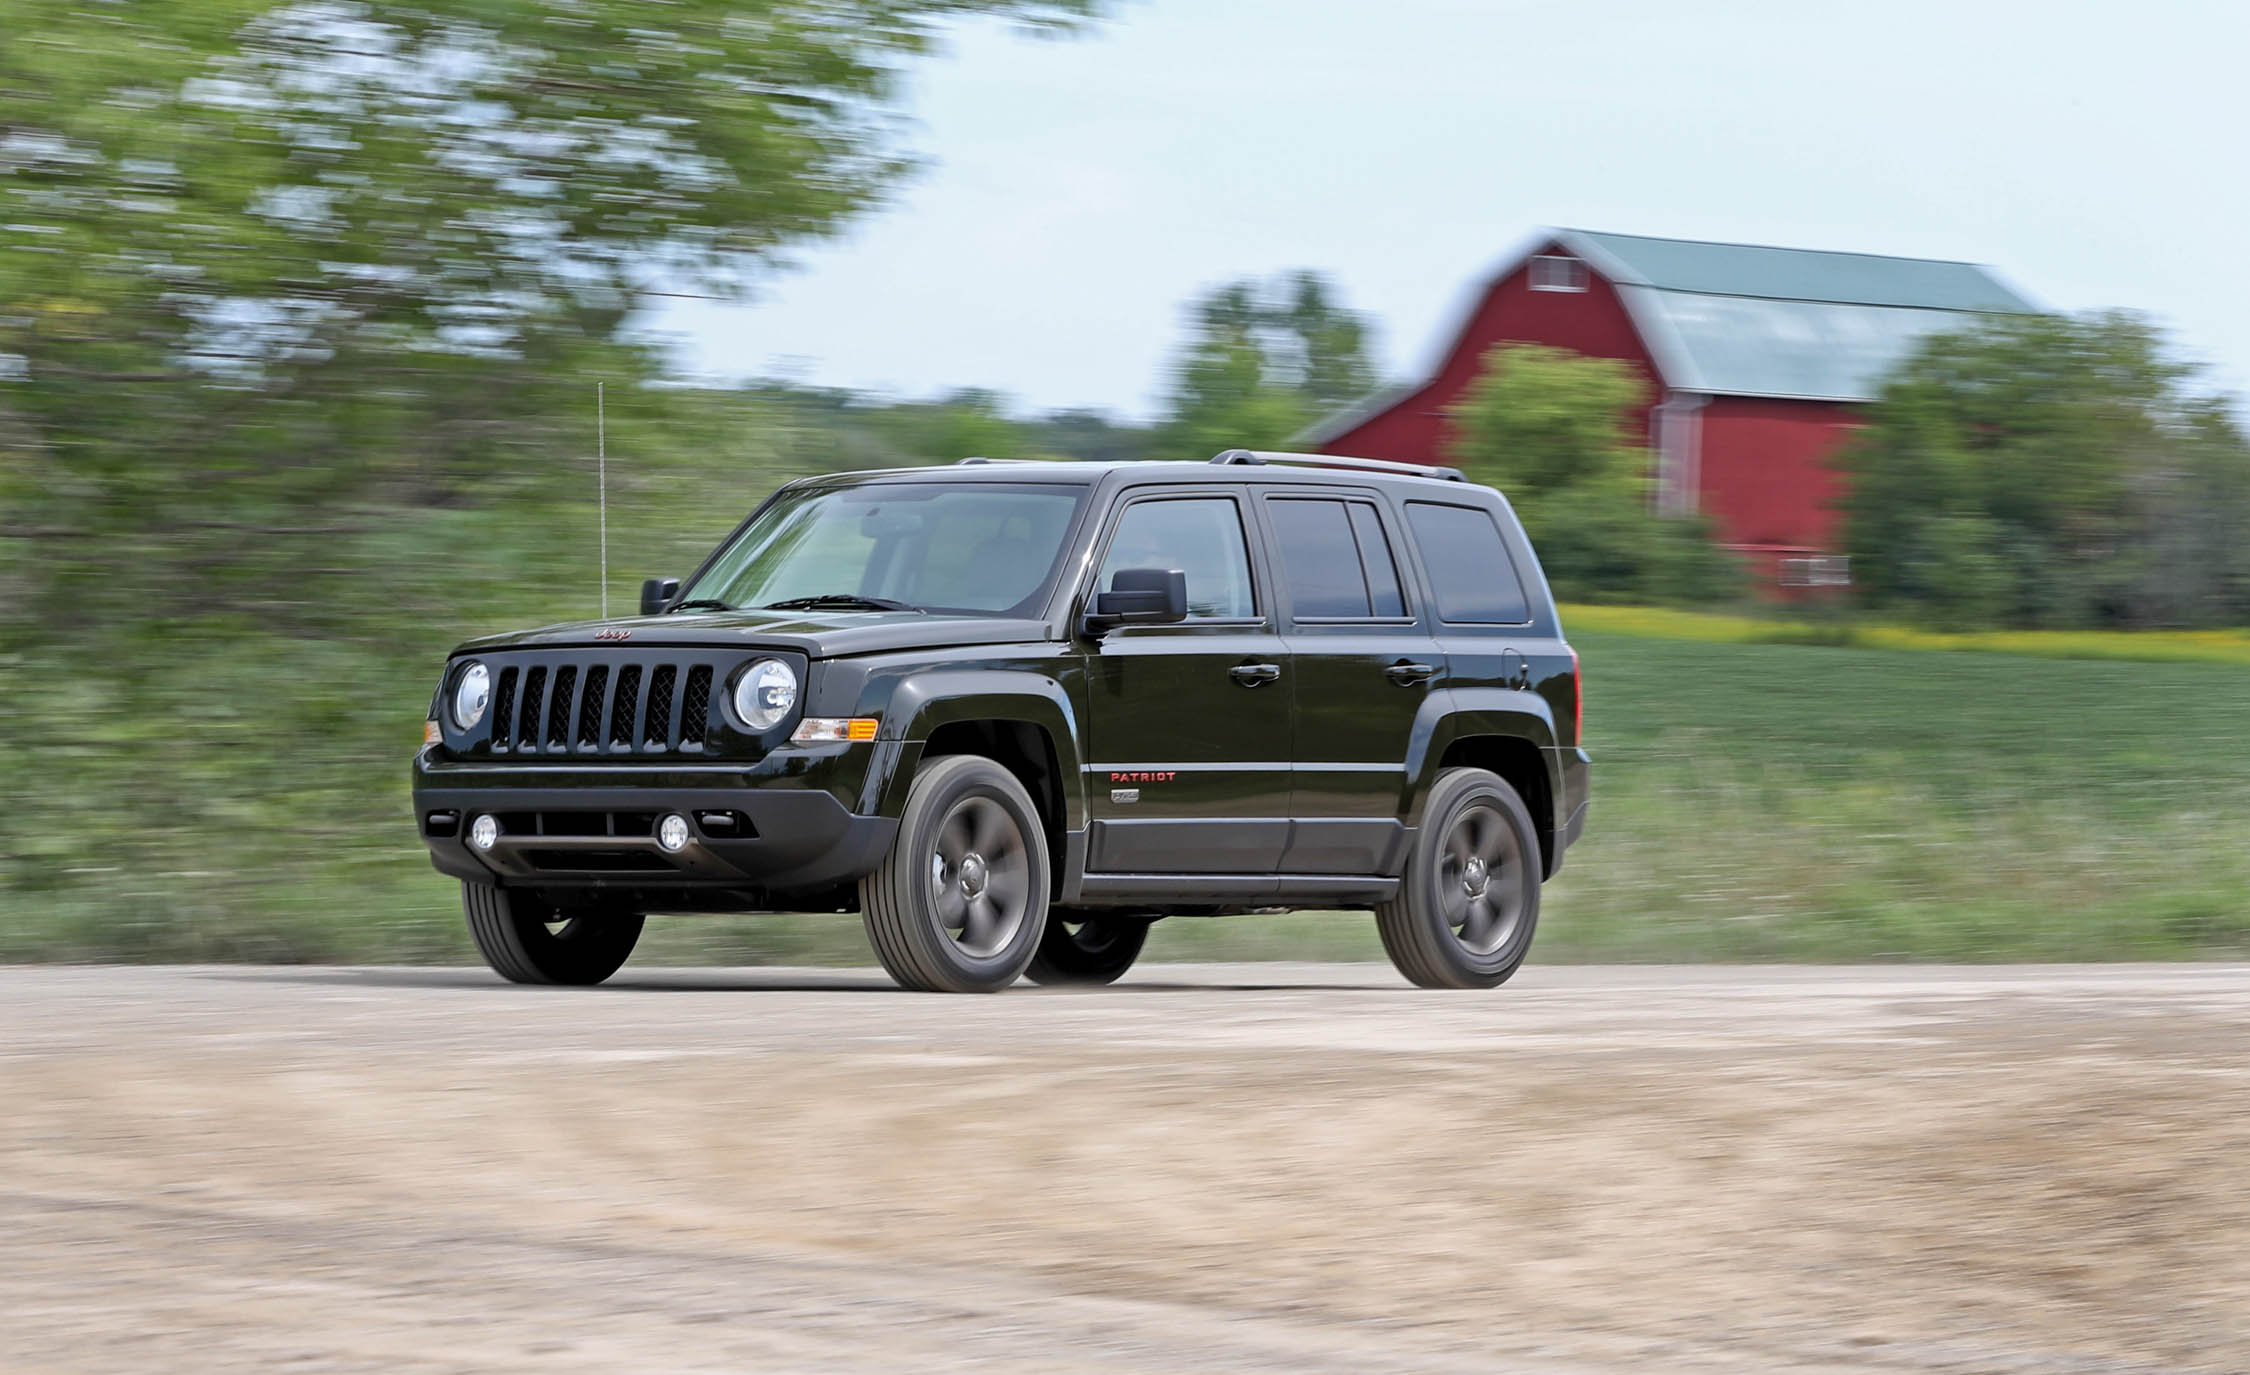 2016 Jeep Patriot Test Drive Front And Side View (Photo 18 of 27)